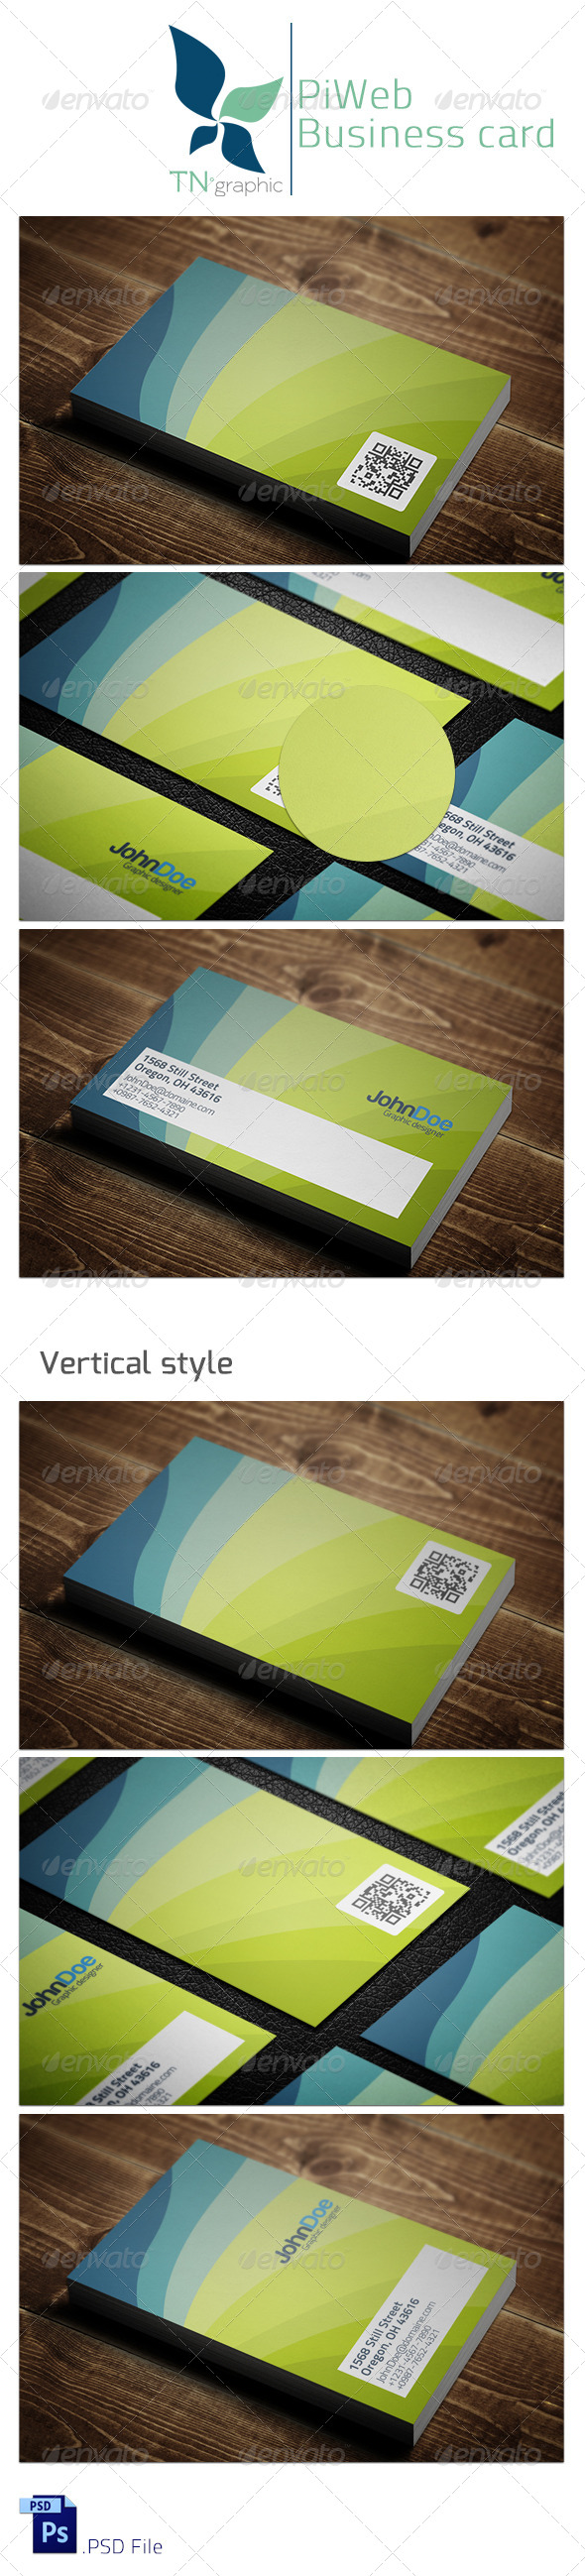 GraphicRiver Piweb Business card 5356859